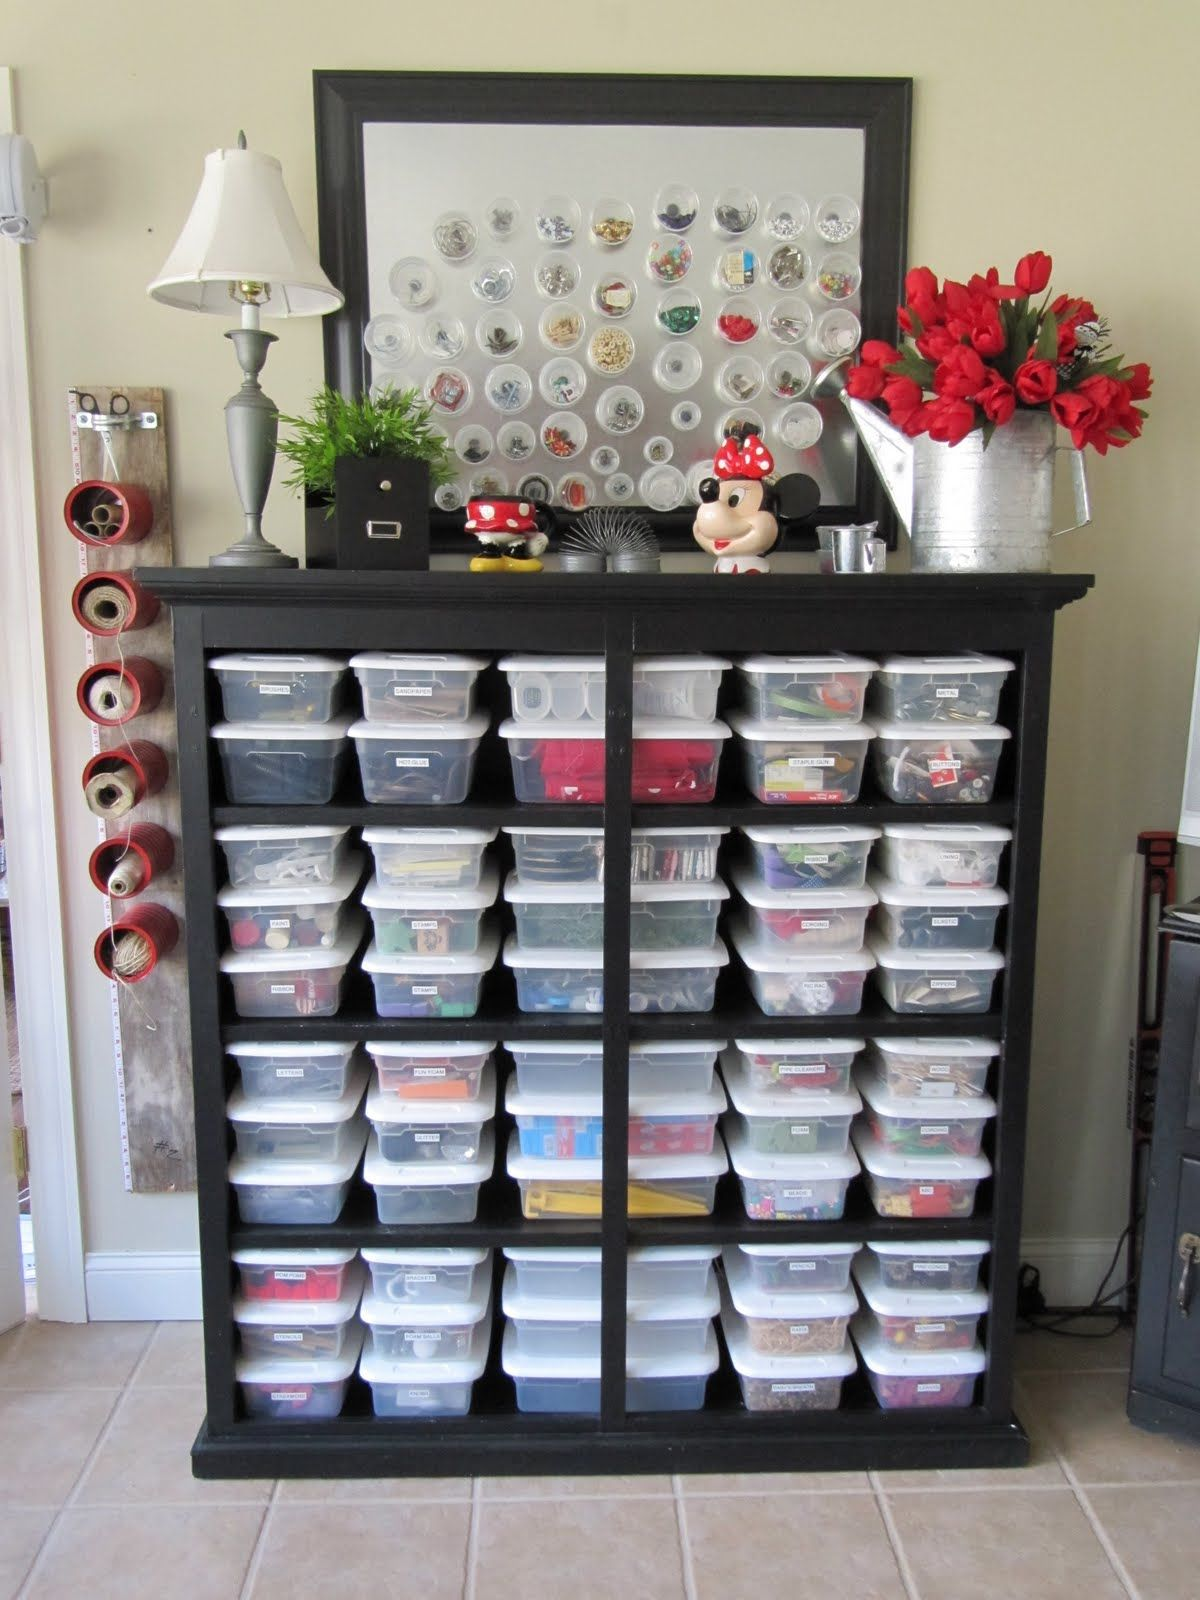 Genial Organizing Crafts Stuff! I Need This! But I Would Put A Curtain In Front  Cause It Will Never Look That Nice For Me.